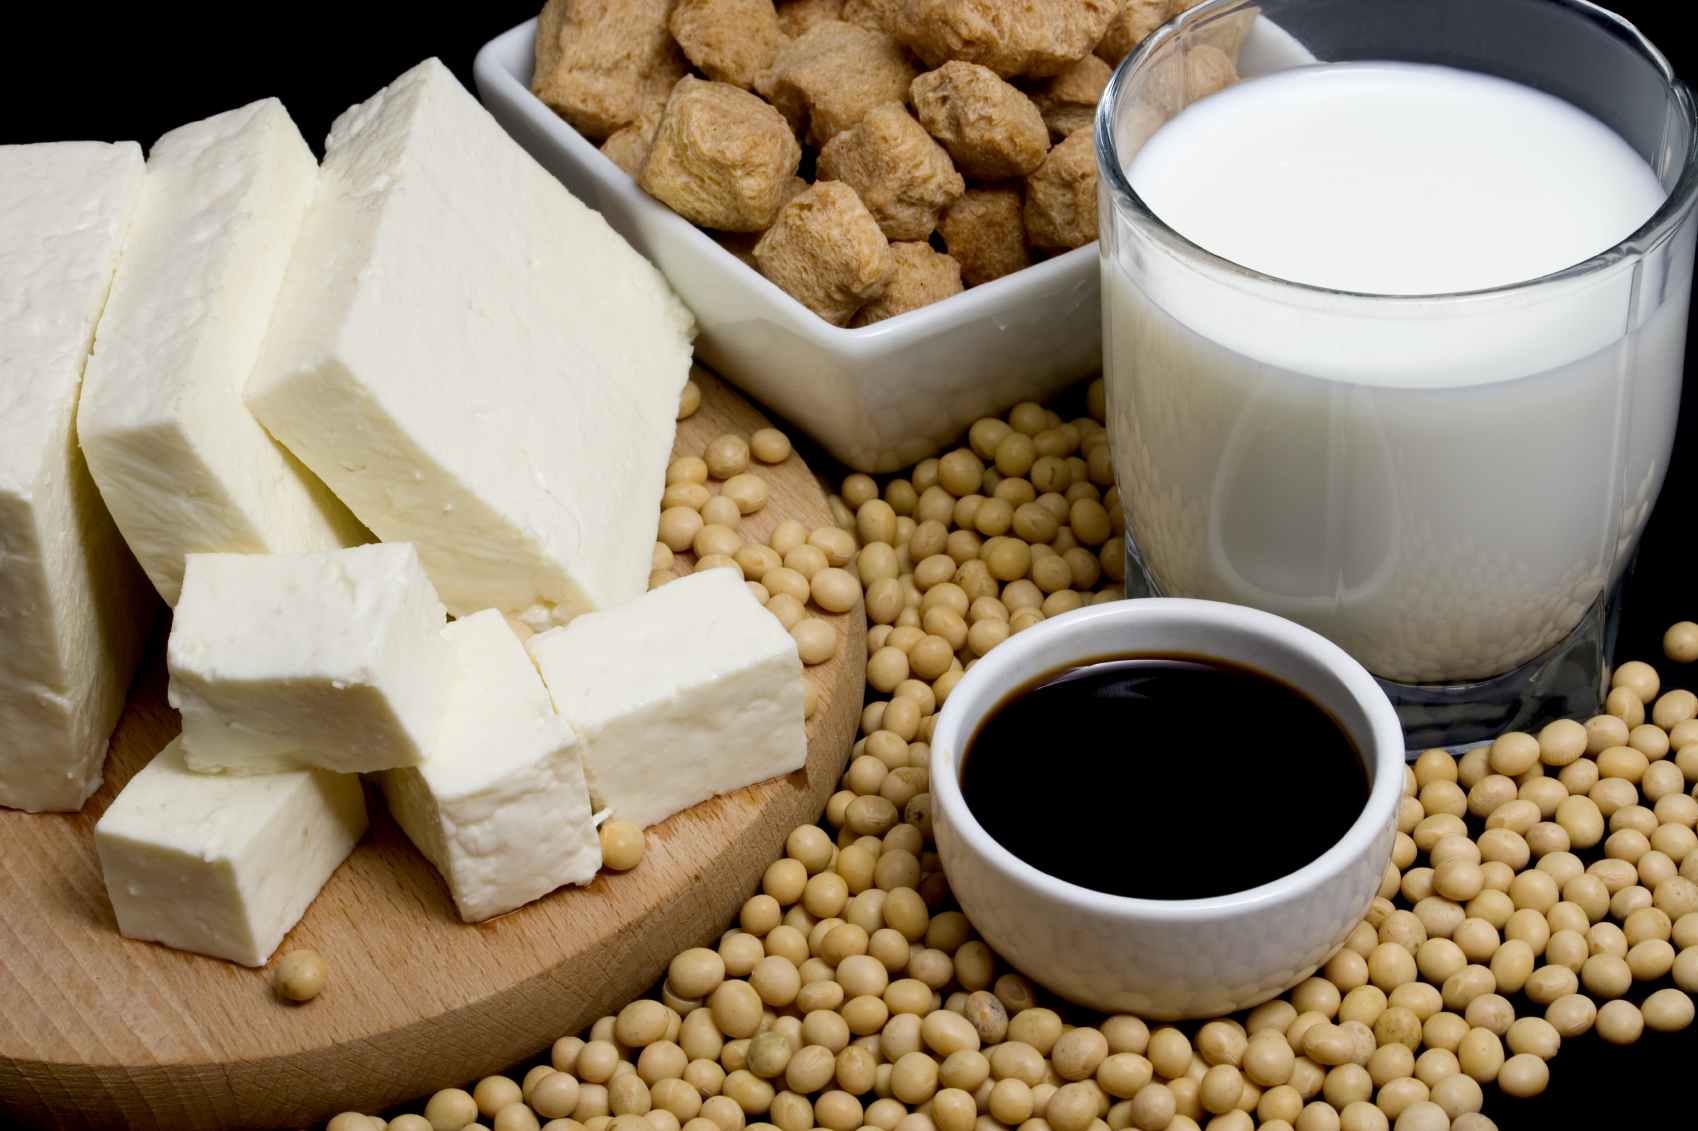 Soy alternatives tofu milk stephcuesta